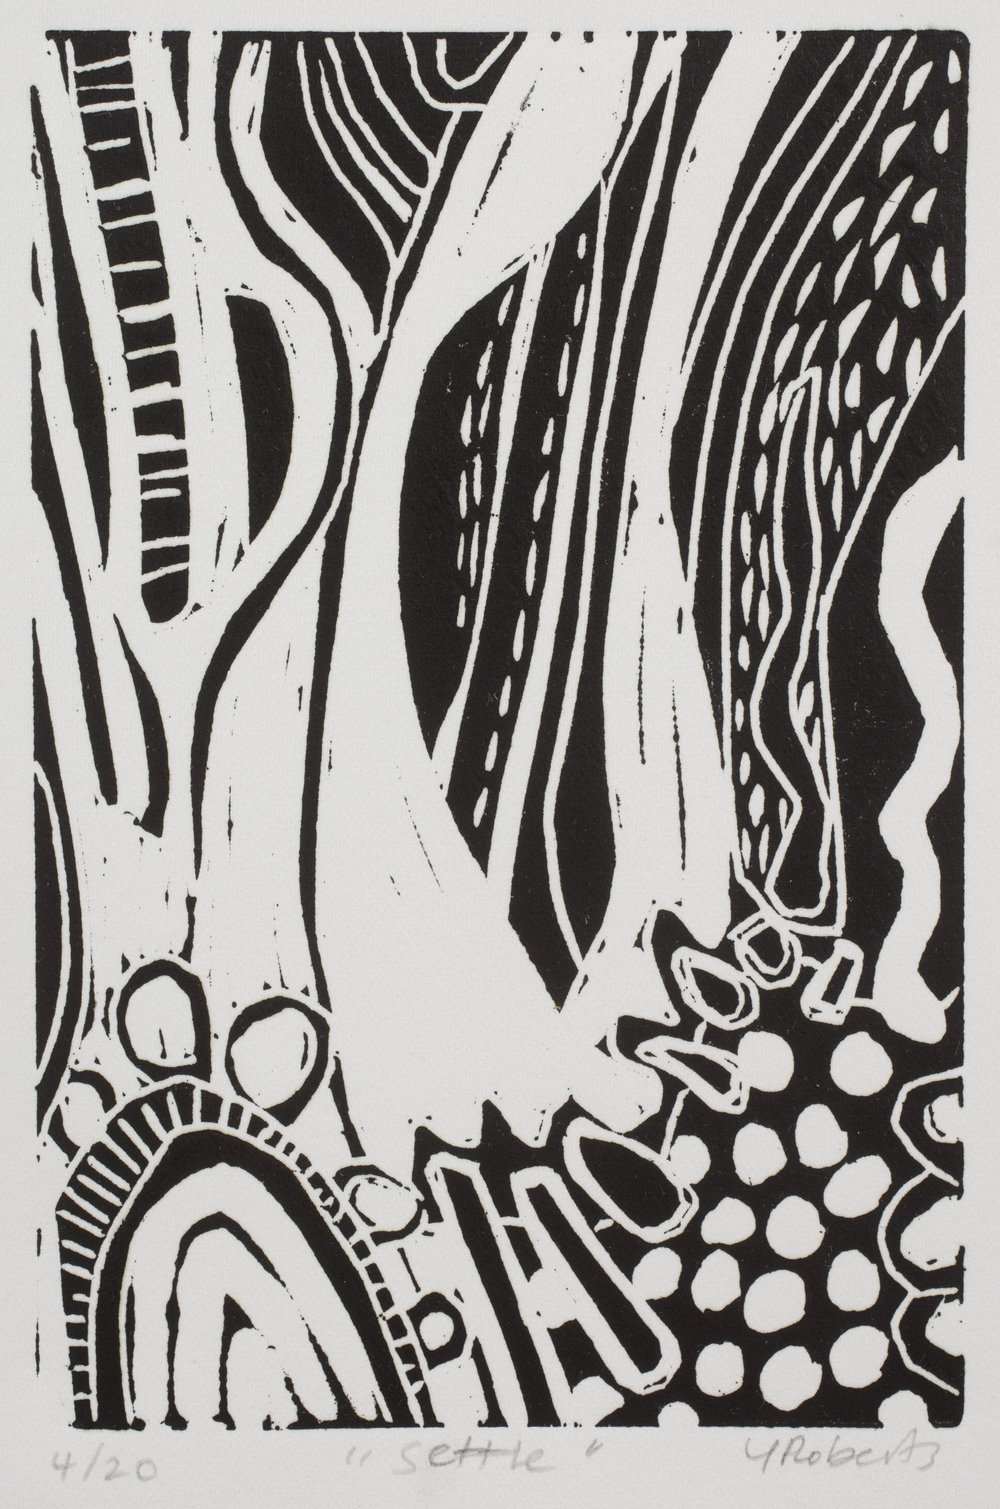 Settle , Linocut, edition 4/20